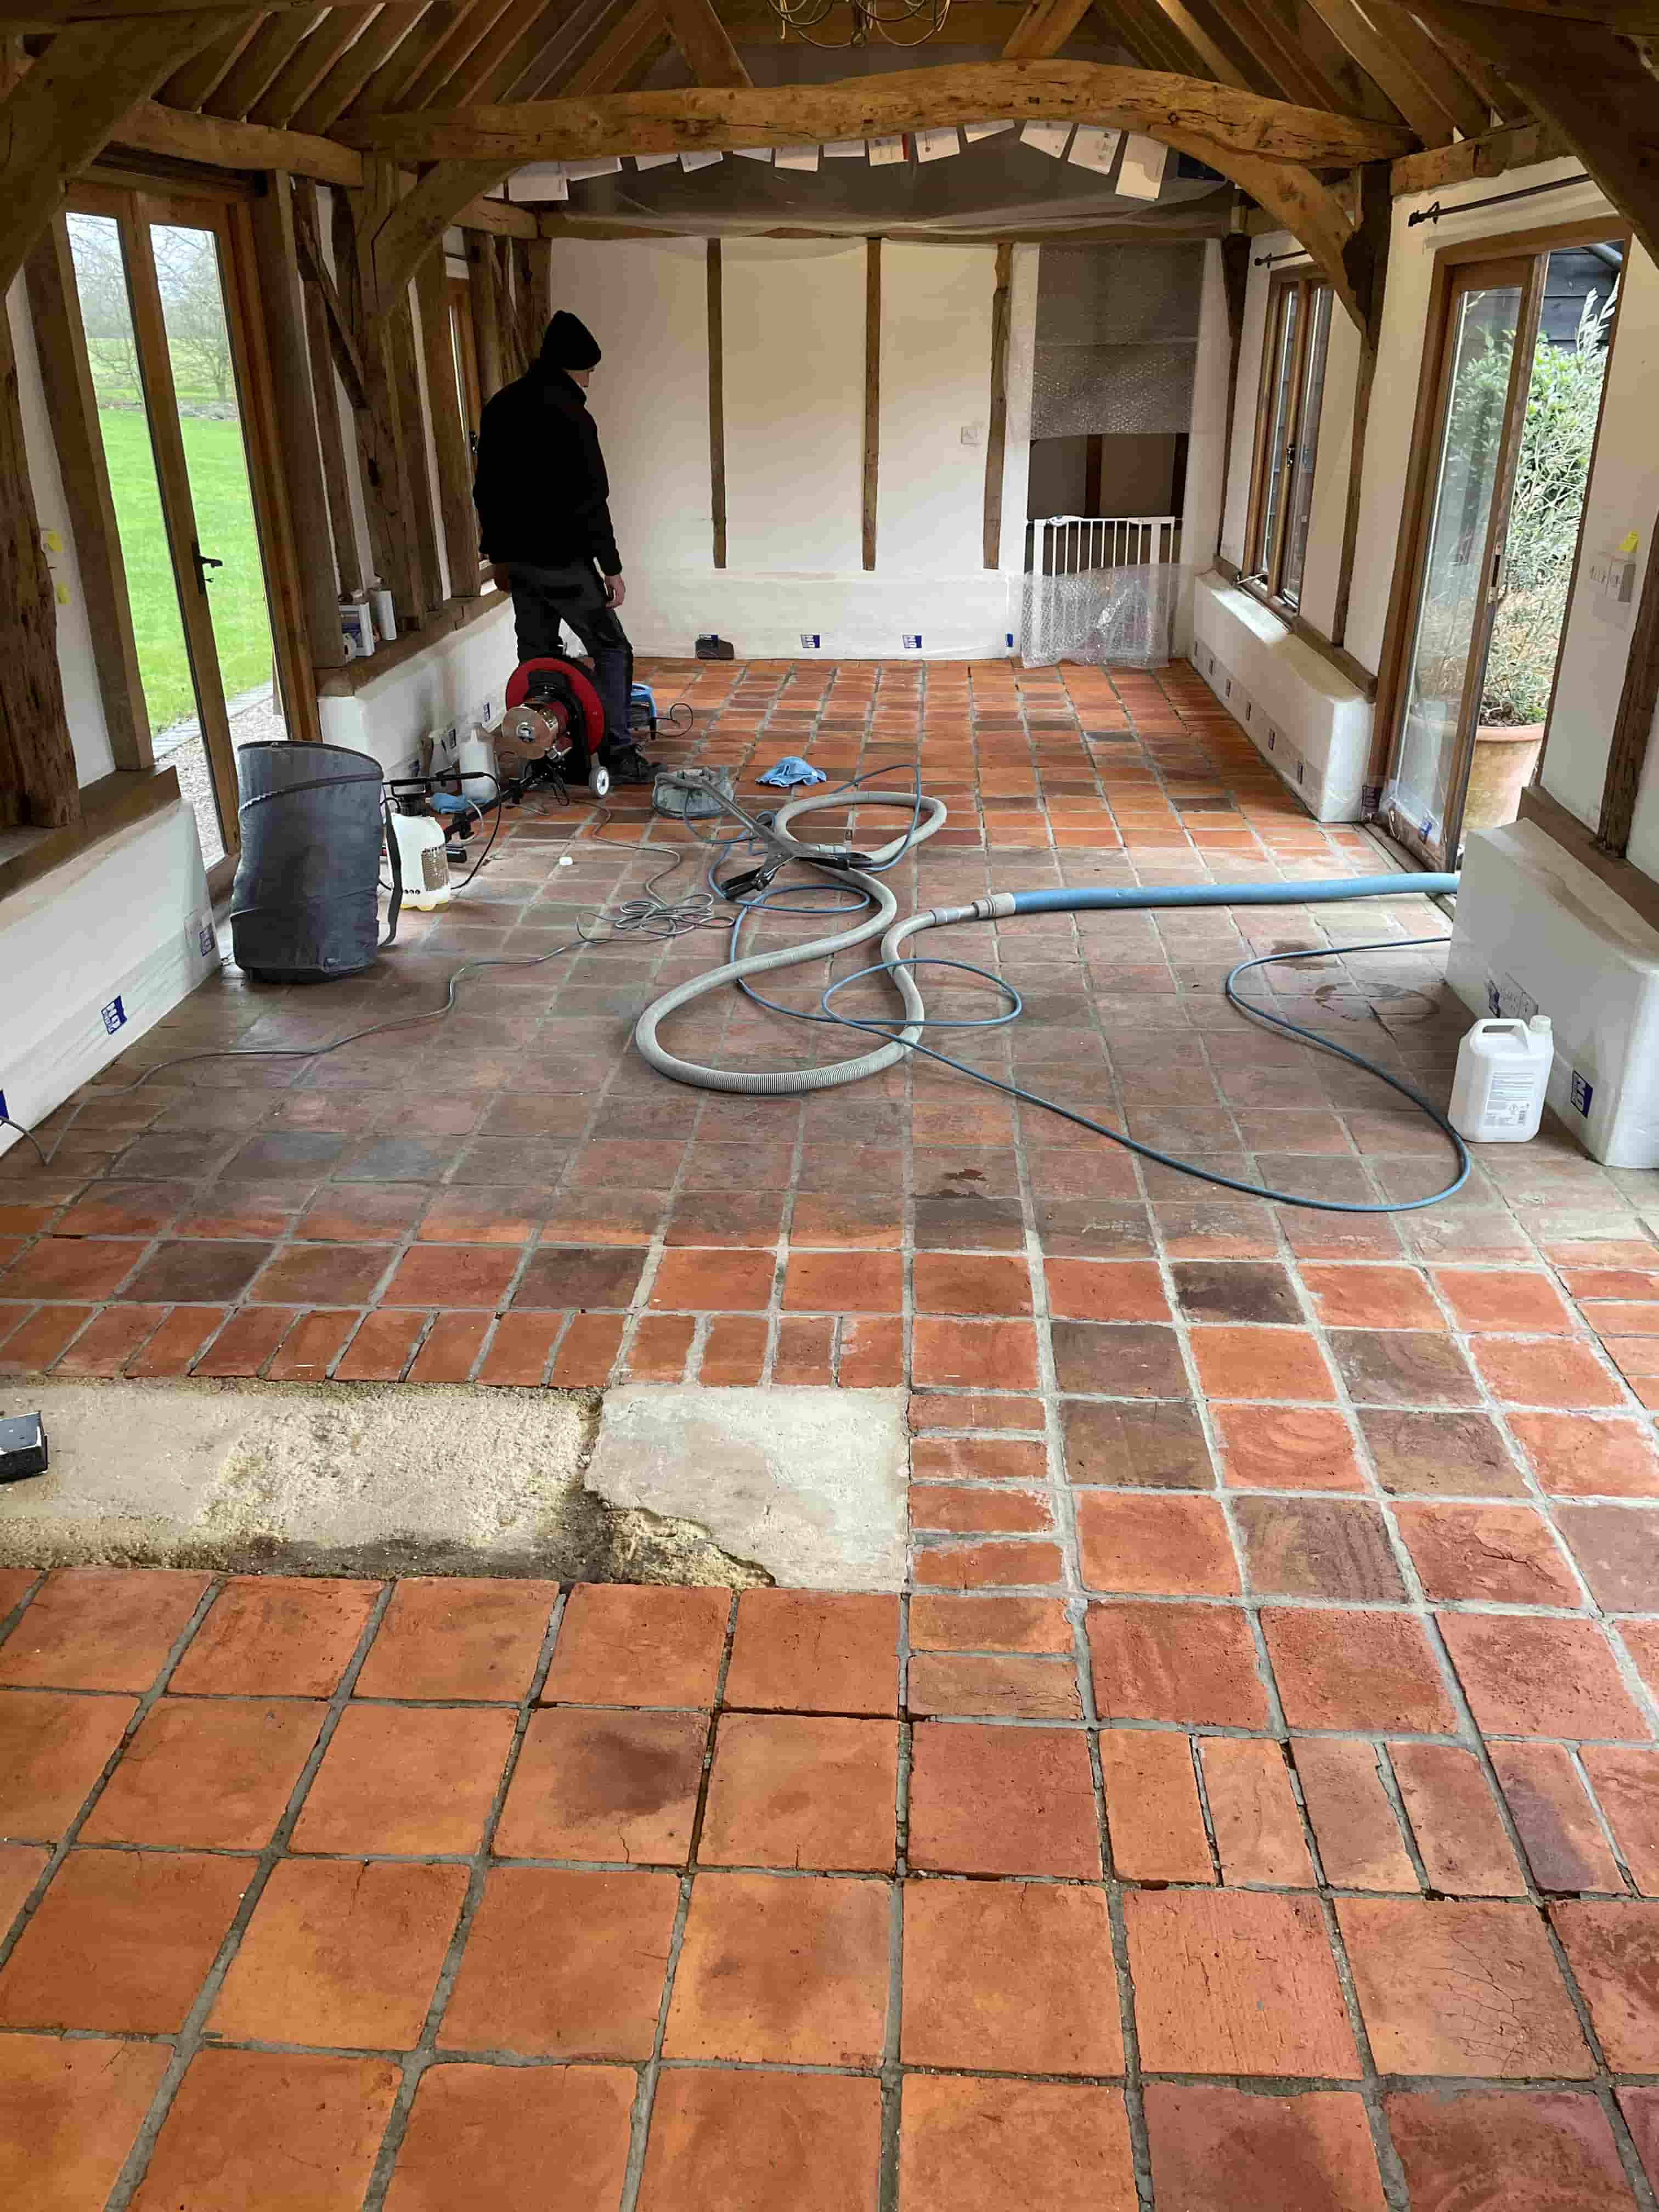 Terracotta and Quarry Tiled Floor During Renovation at Old Barn Conversion Hawkinge